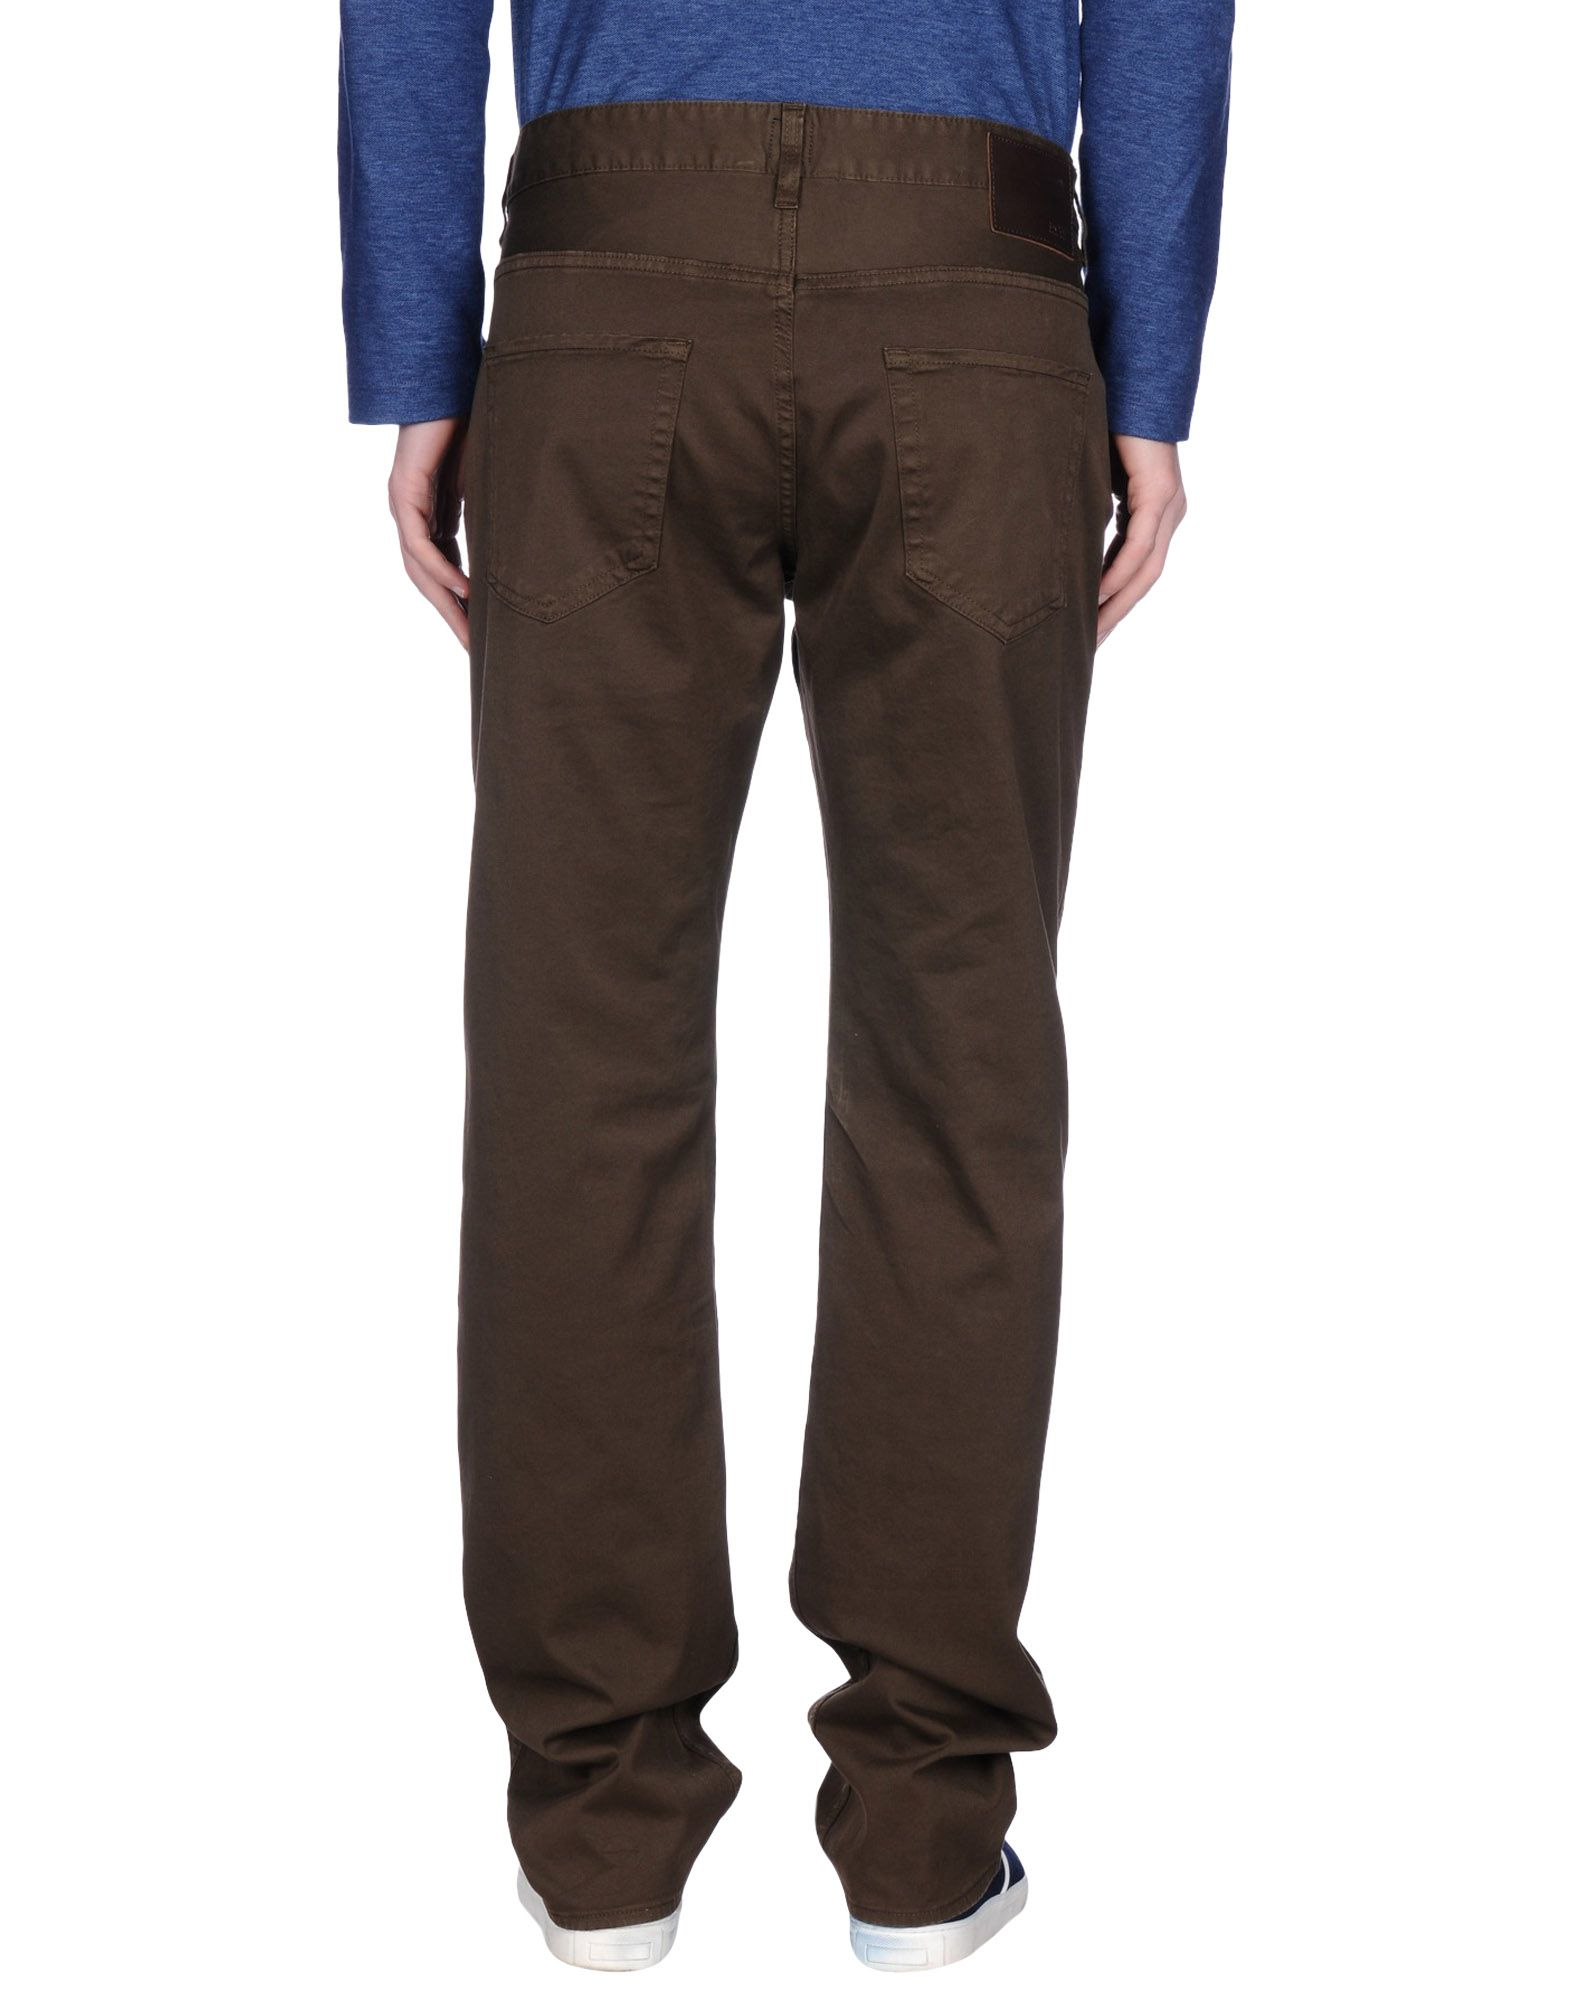 Stanley Workwear Mens Michigan Cargo Trousers Black Whether you are relaxing at home or jogging around the park we have a range of mens trousers in a variety of styles and fabrics to suit any occasion or task. Browse over 60 styles of mens joggers, cargo pants, casual trousers and other styles from an unparalleled choice of.